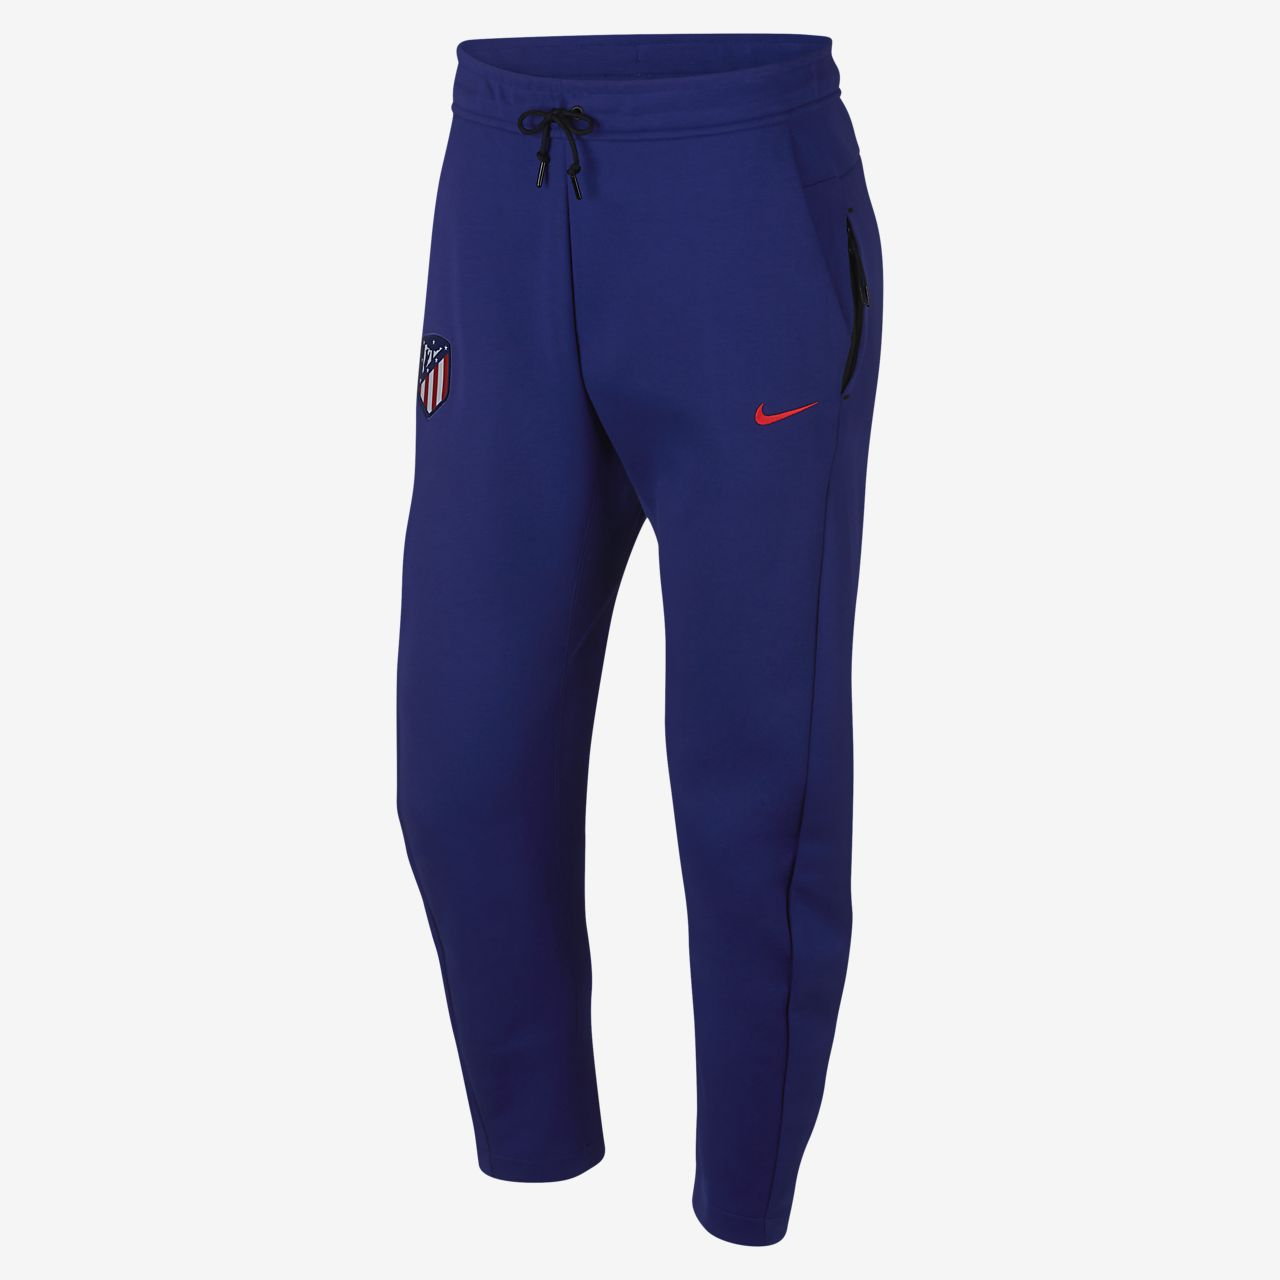 Atletico de Madrid Tech Fleece Erkek Eşofman Altı